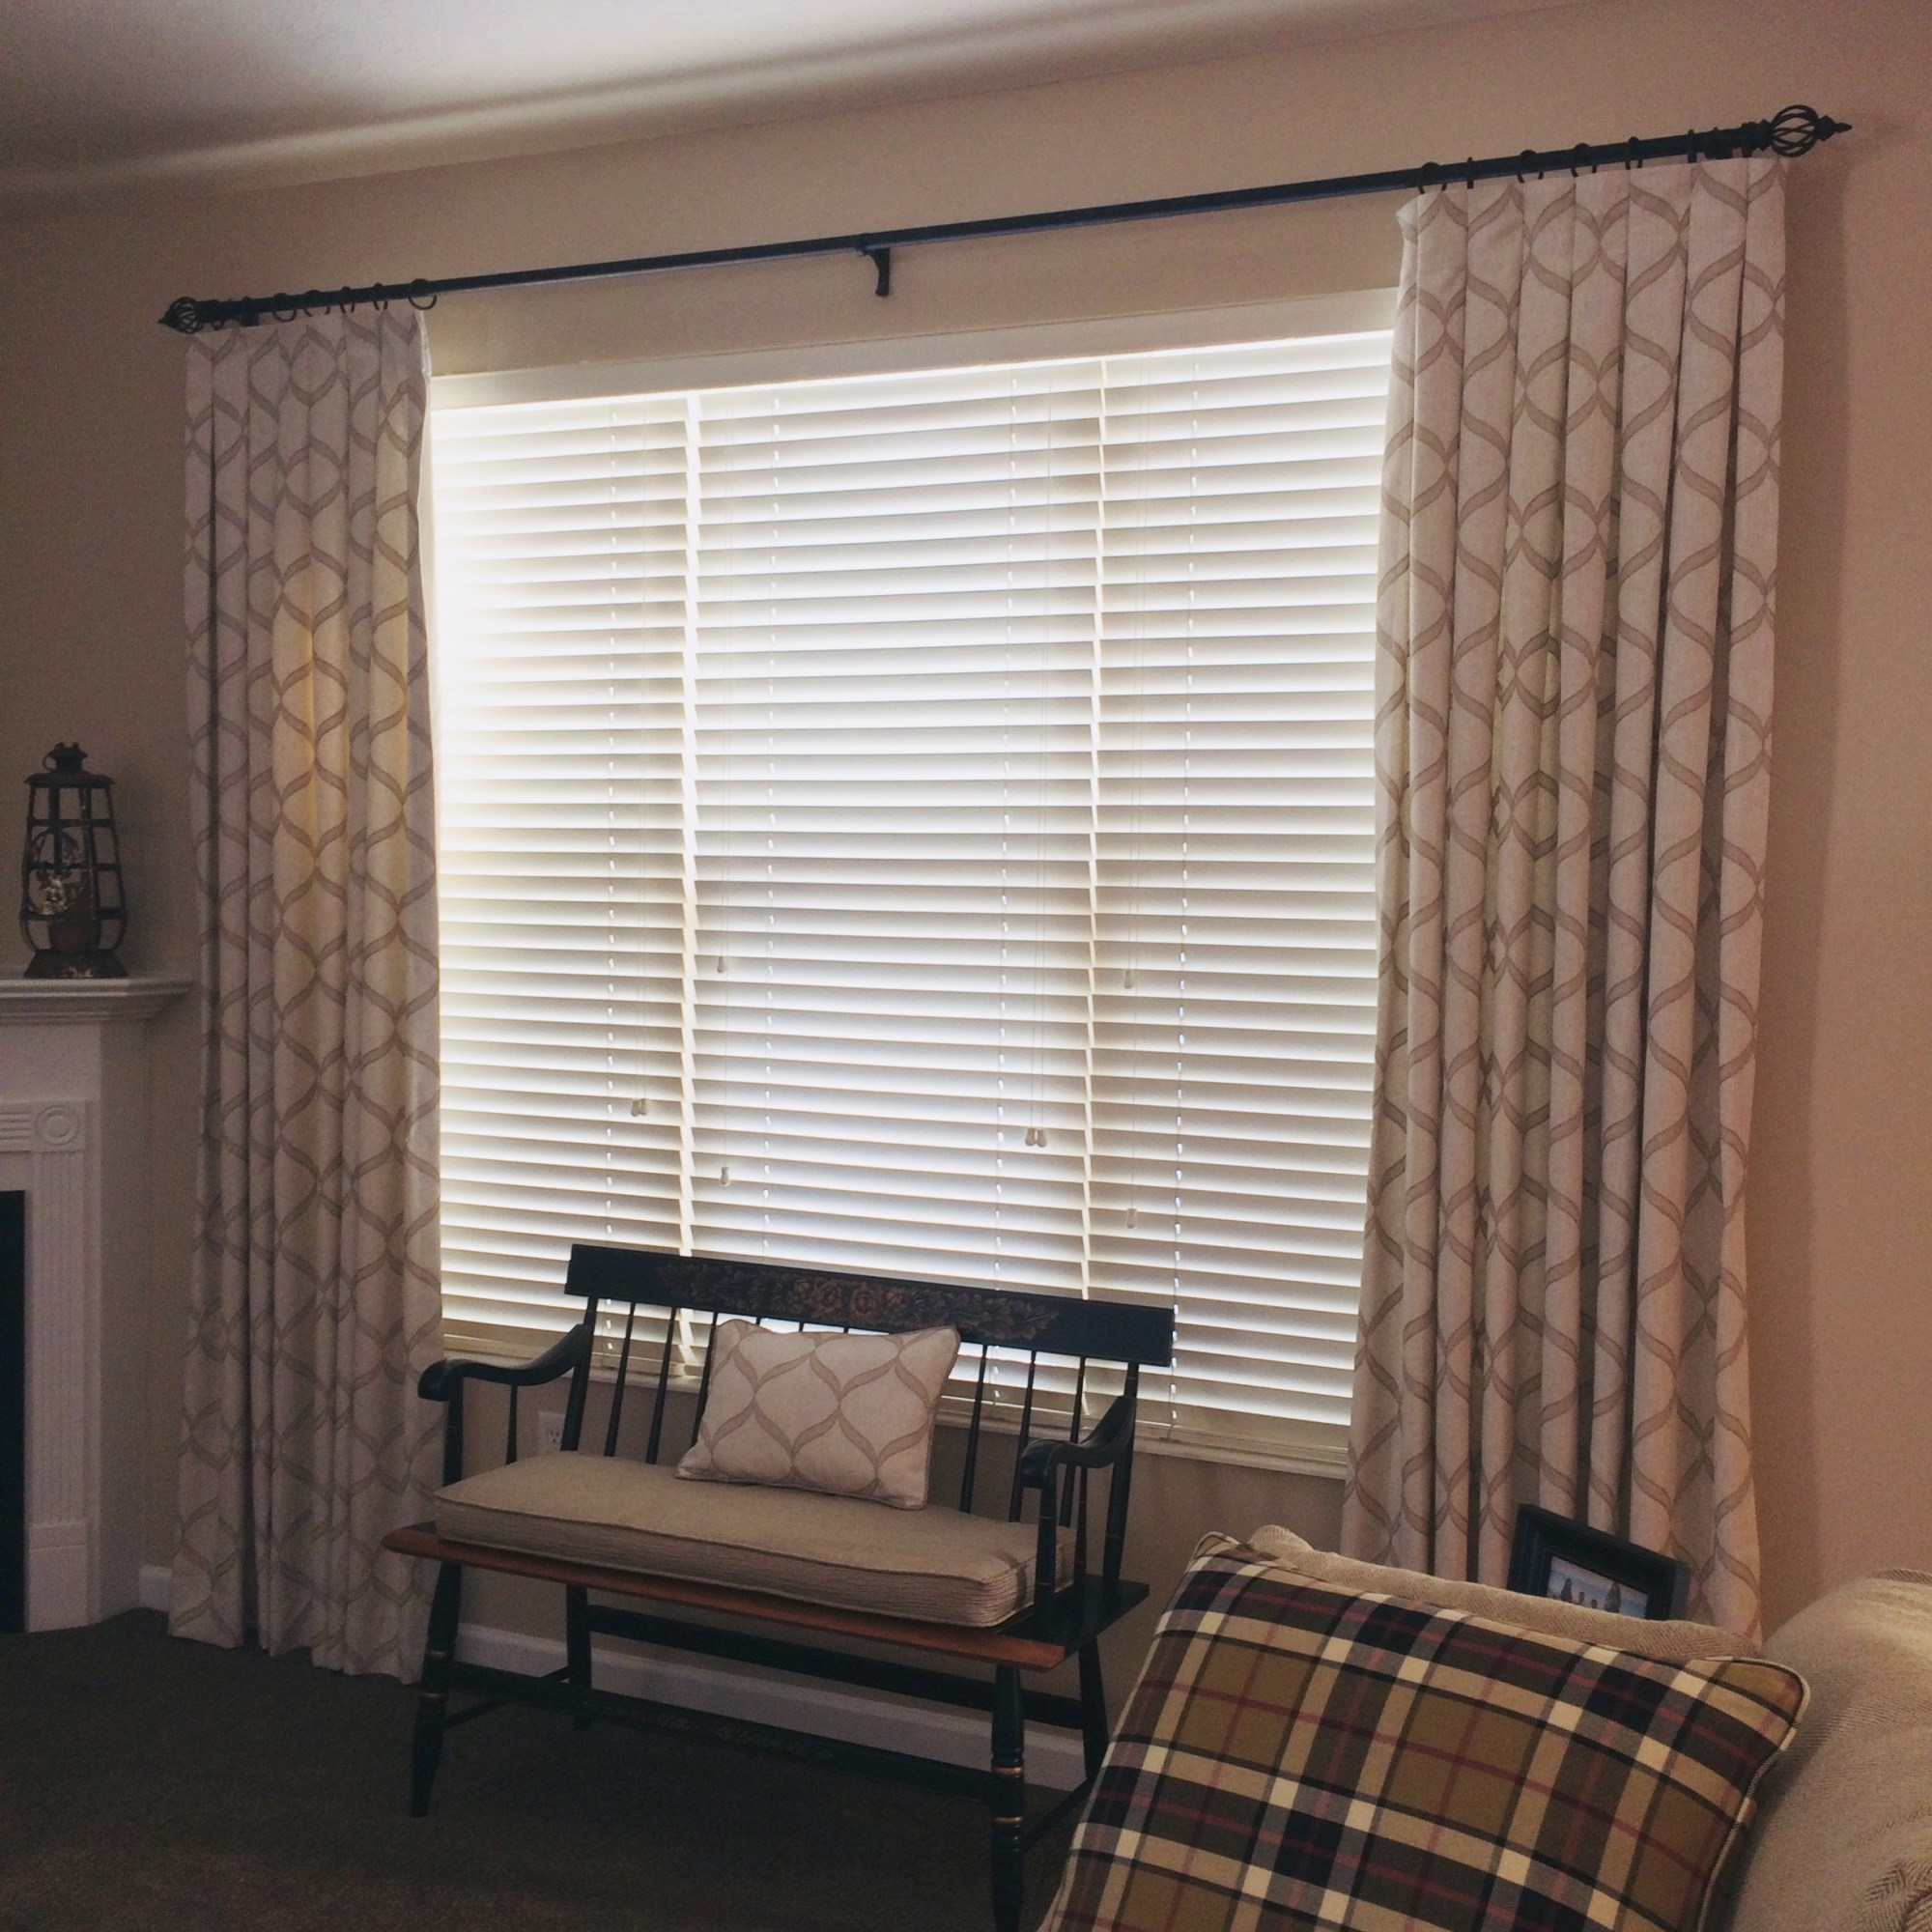 window-treatment-stationary-drapes